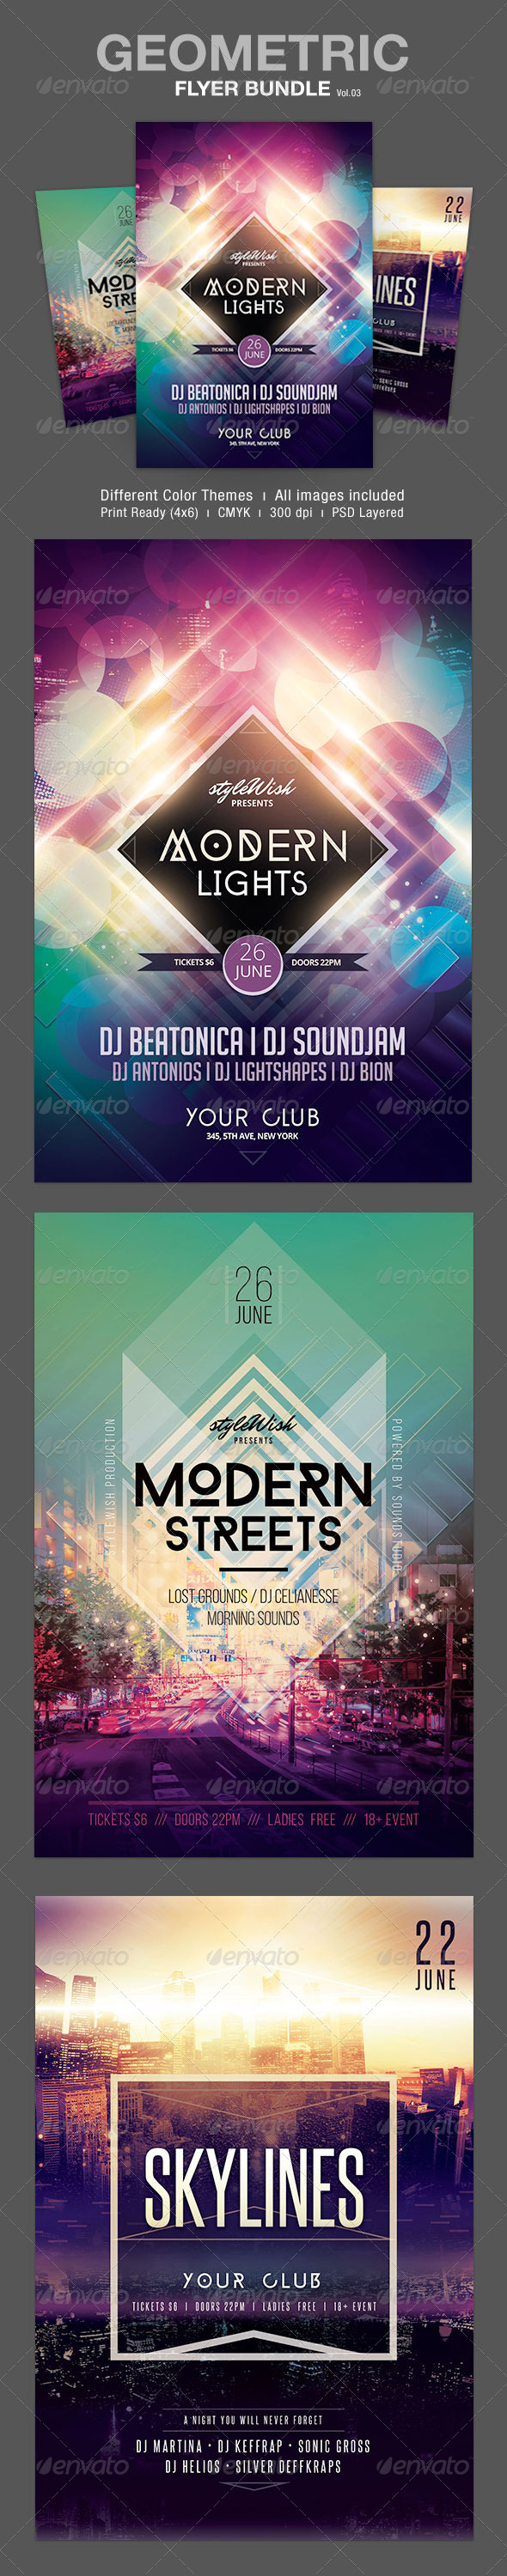 Geometric Flyer Bundle Vol.03 - Clubs & Parties Events